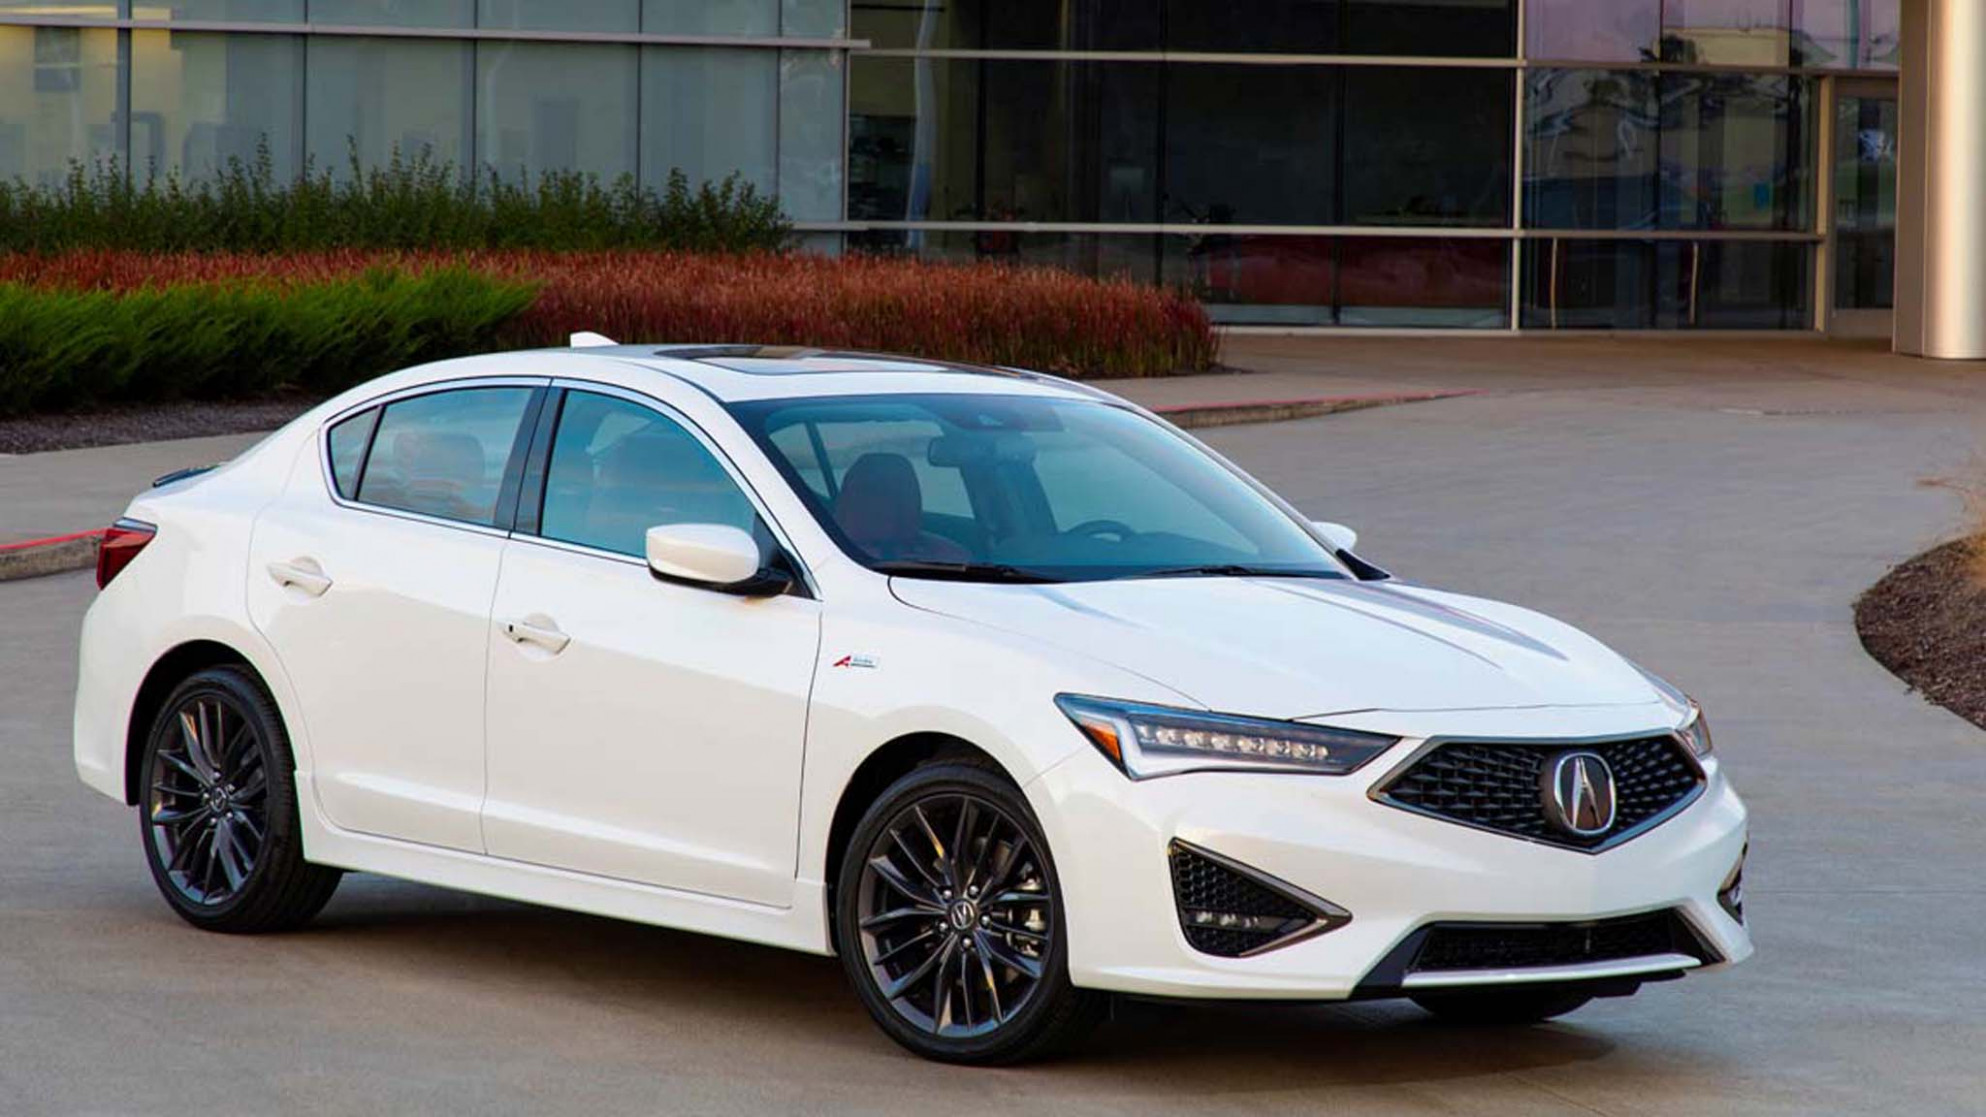 6 Acura ILX Buyer's Guide: Reviews, Specs, Comparisons